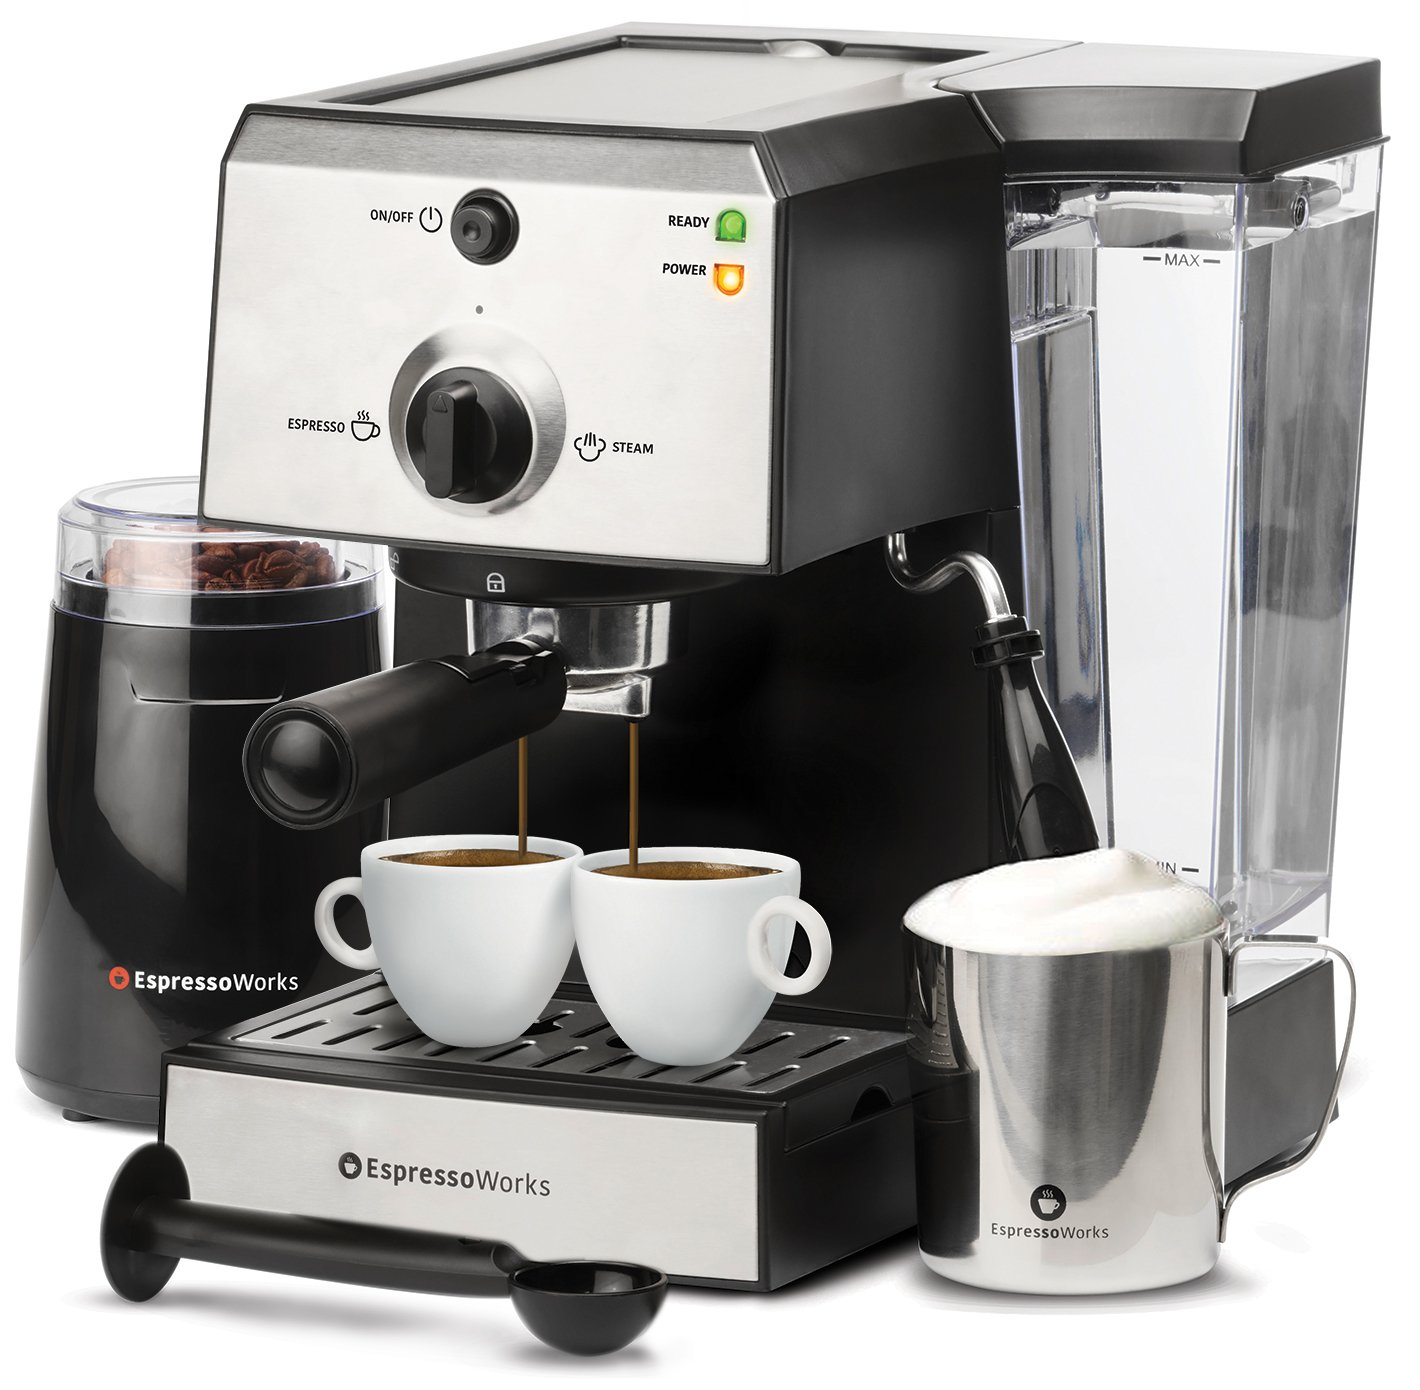 7 Pc All-In-One Espresso/Cappuccino Machine Bundle Set- (Includes: Electric Coffee Bean Grinder, Portafilter, Stainless Steel Frothing Cup, Measuring Spoon w/ Tamper & 2 Espresso Cups), Silver/Black by EspressoWorks (Image #1)